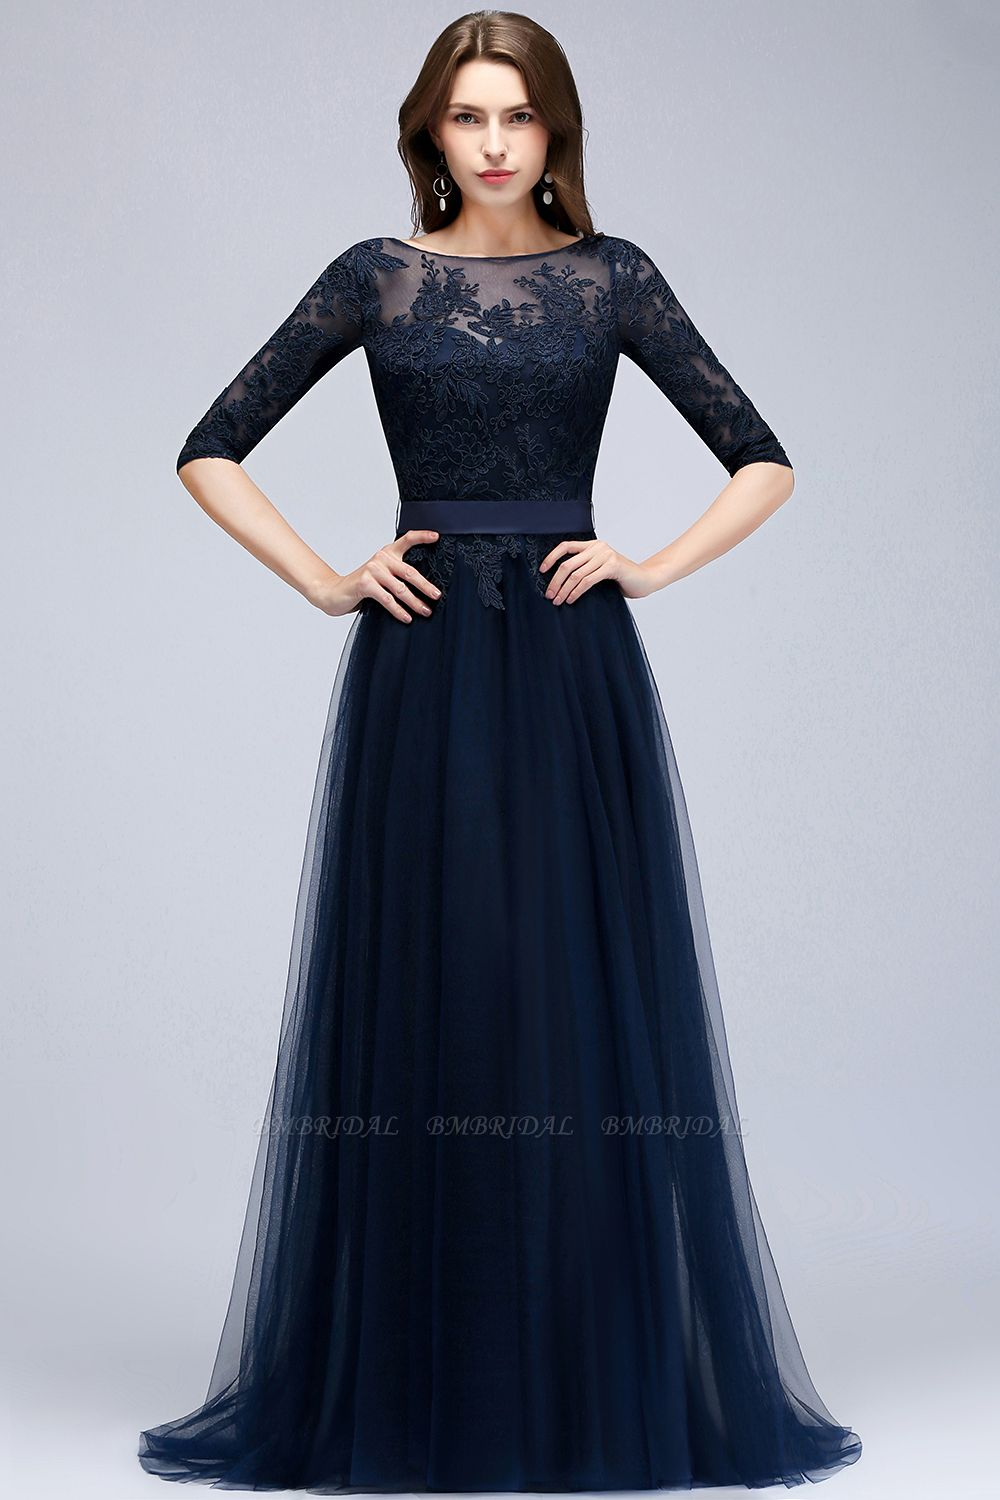 BMbridal Elegant Half-Sleeves Lace Navy Bridesmaid Dresses with Appliques